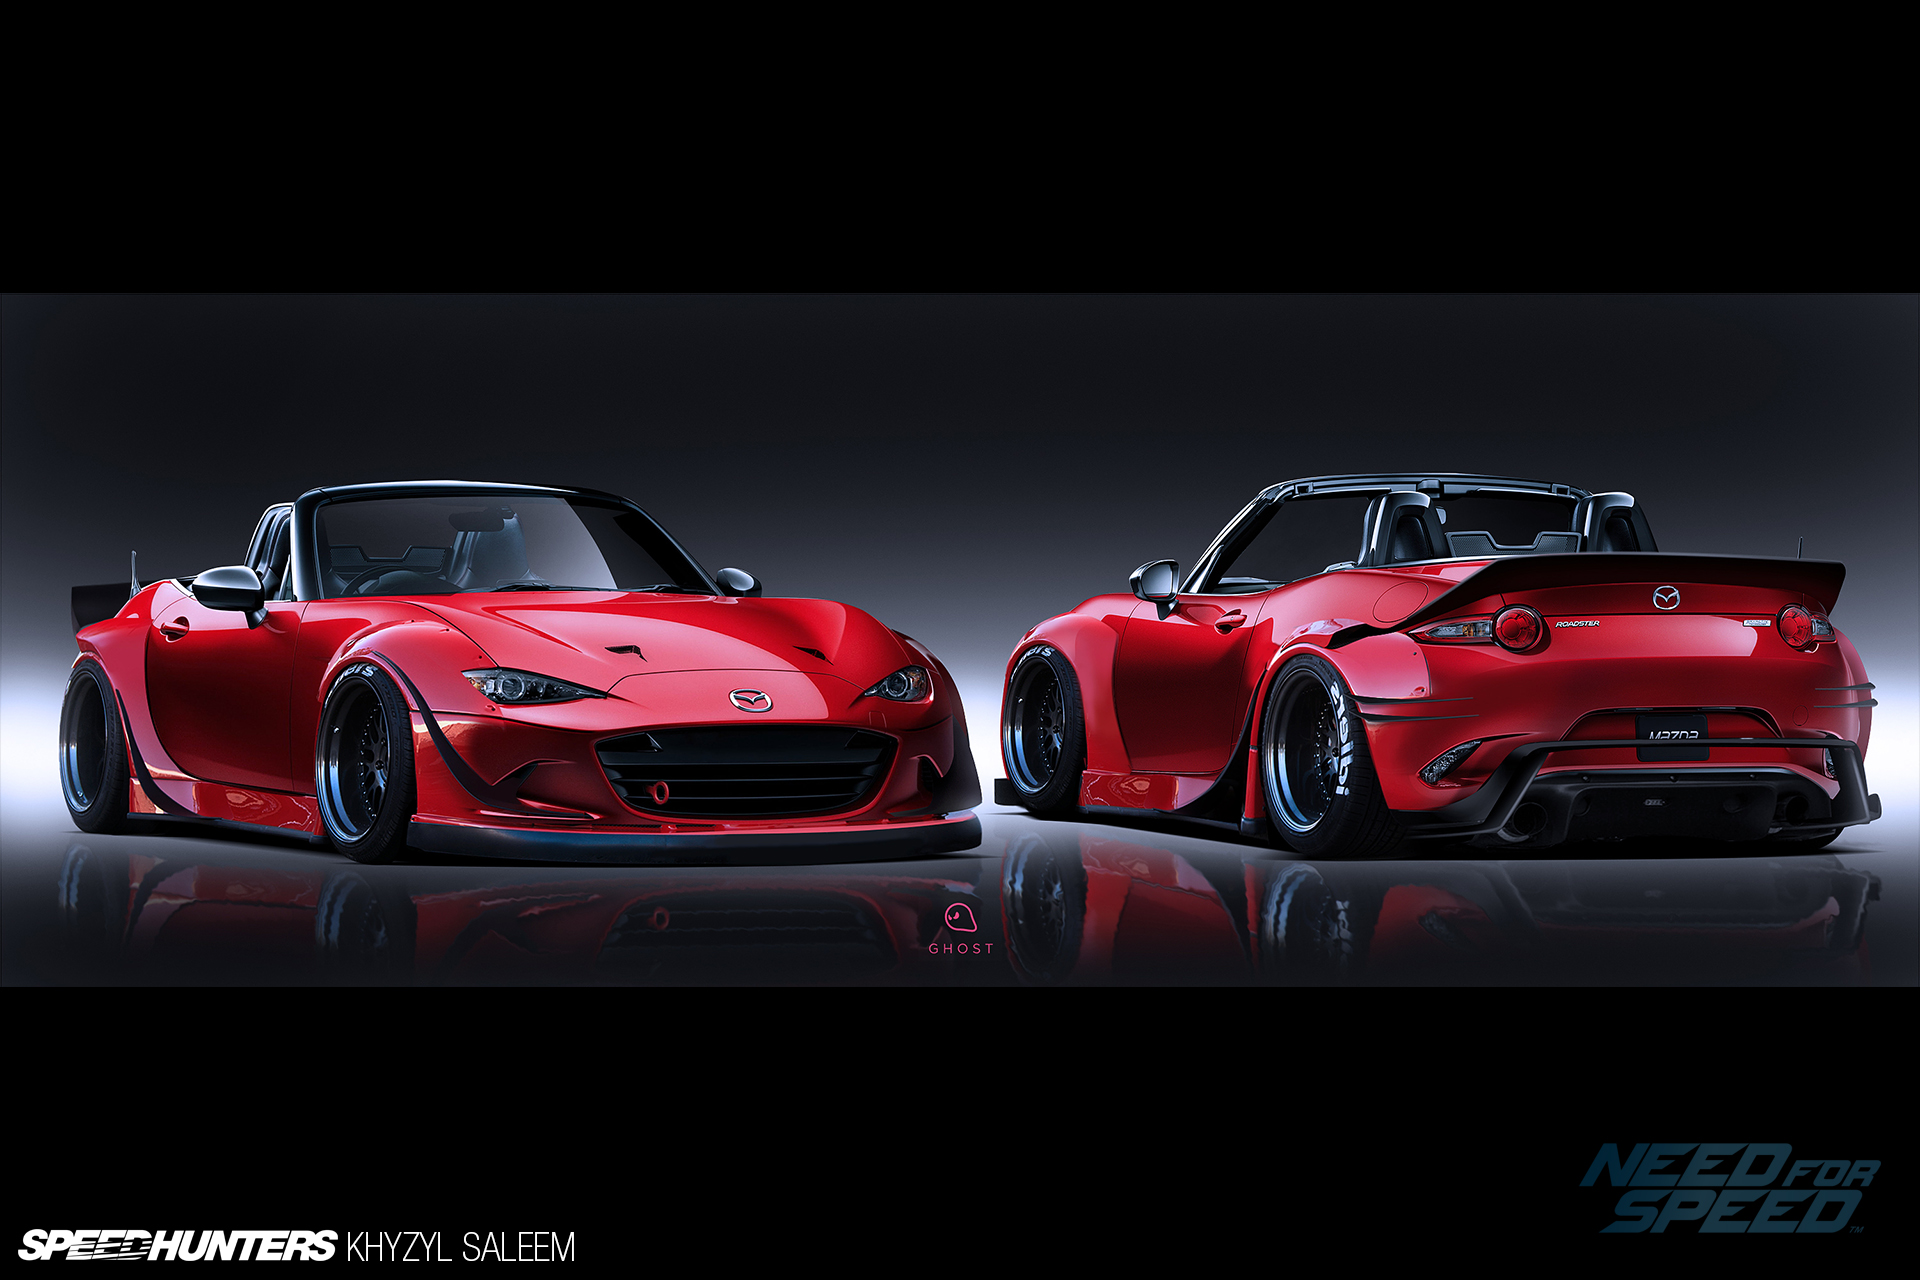 Need for Speed - 2015 - Speedhunters - DESIGN WORK KHYZYL SHOT